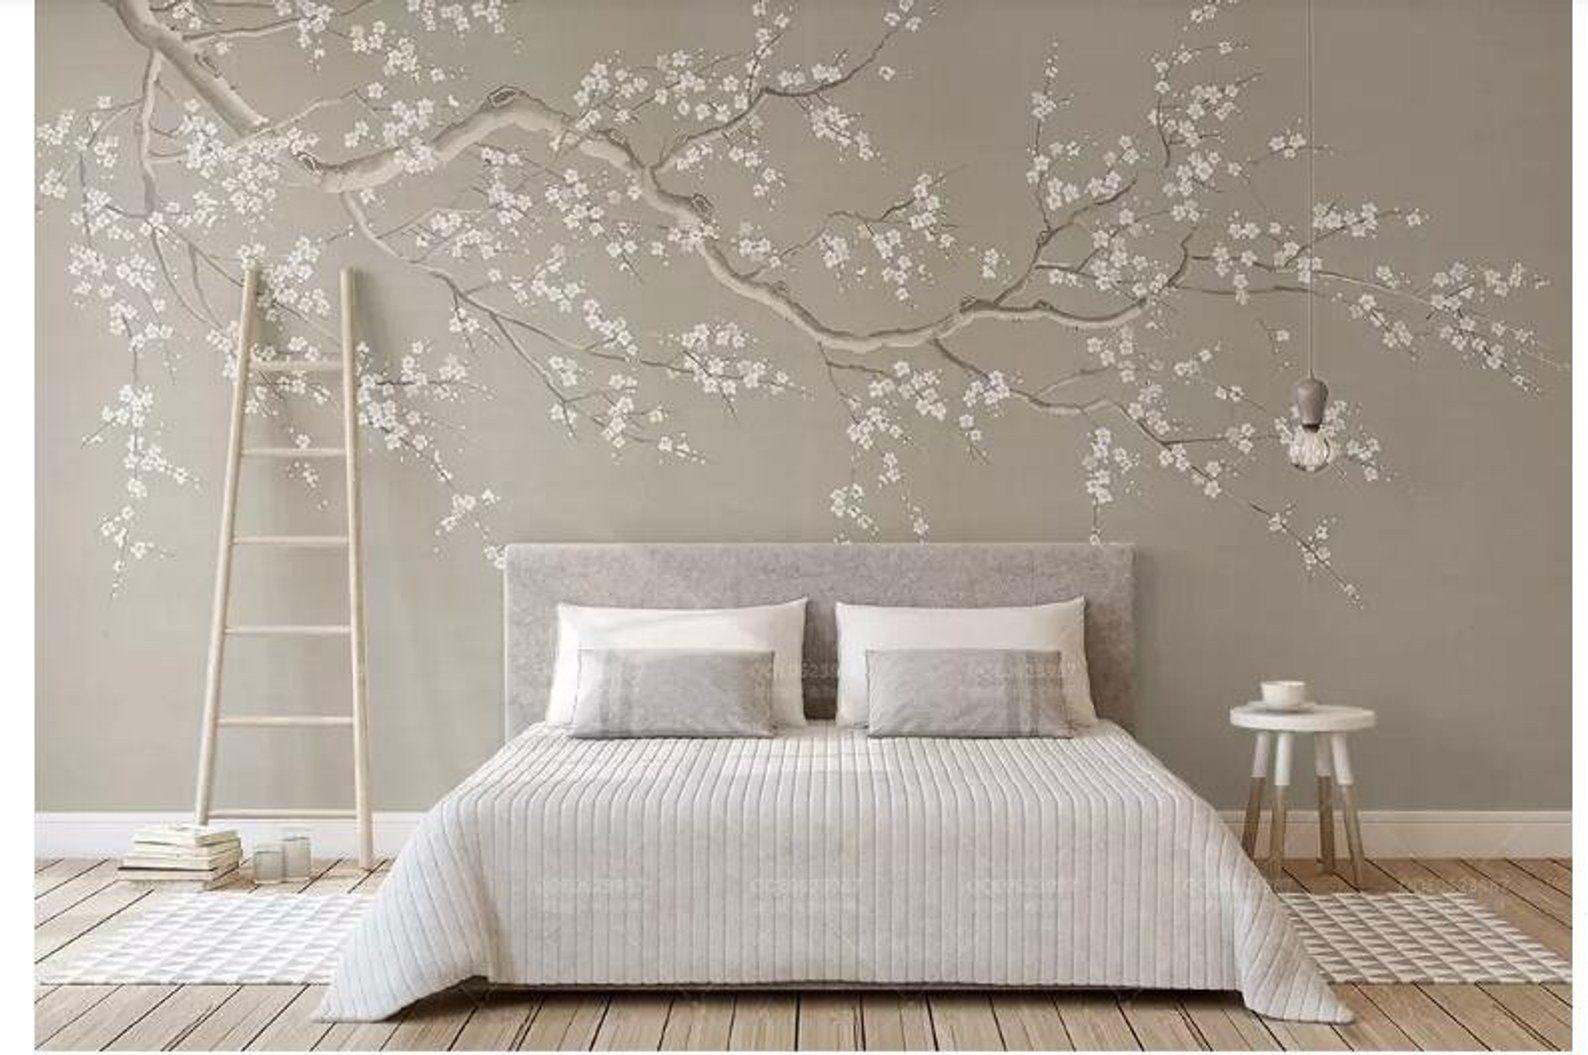 Bedroom Cherry Blossom Wall Mural , HD Wallpaper & Backgrounds